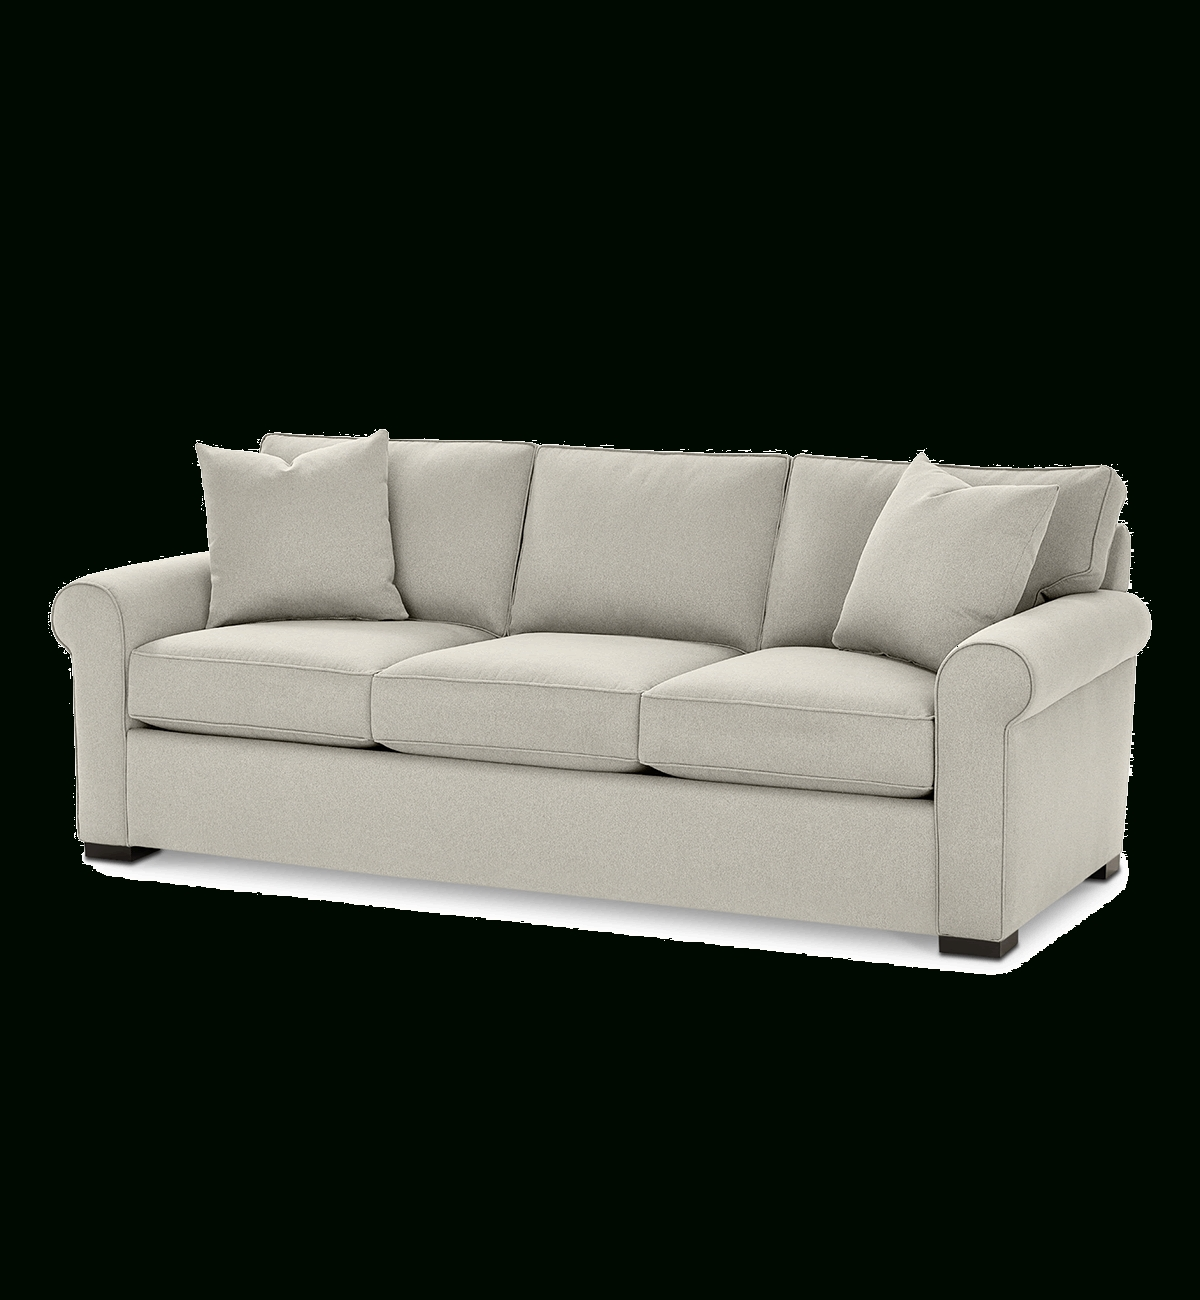 Well Liked Leather Couches And Sofas – Macy's Intended For Macys Leather Sofas (View 5 of 20)